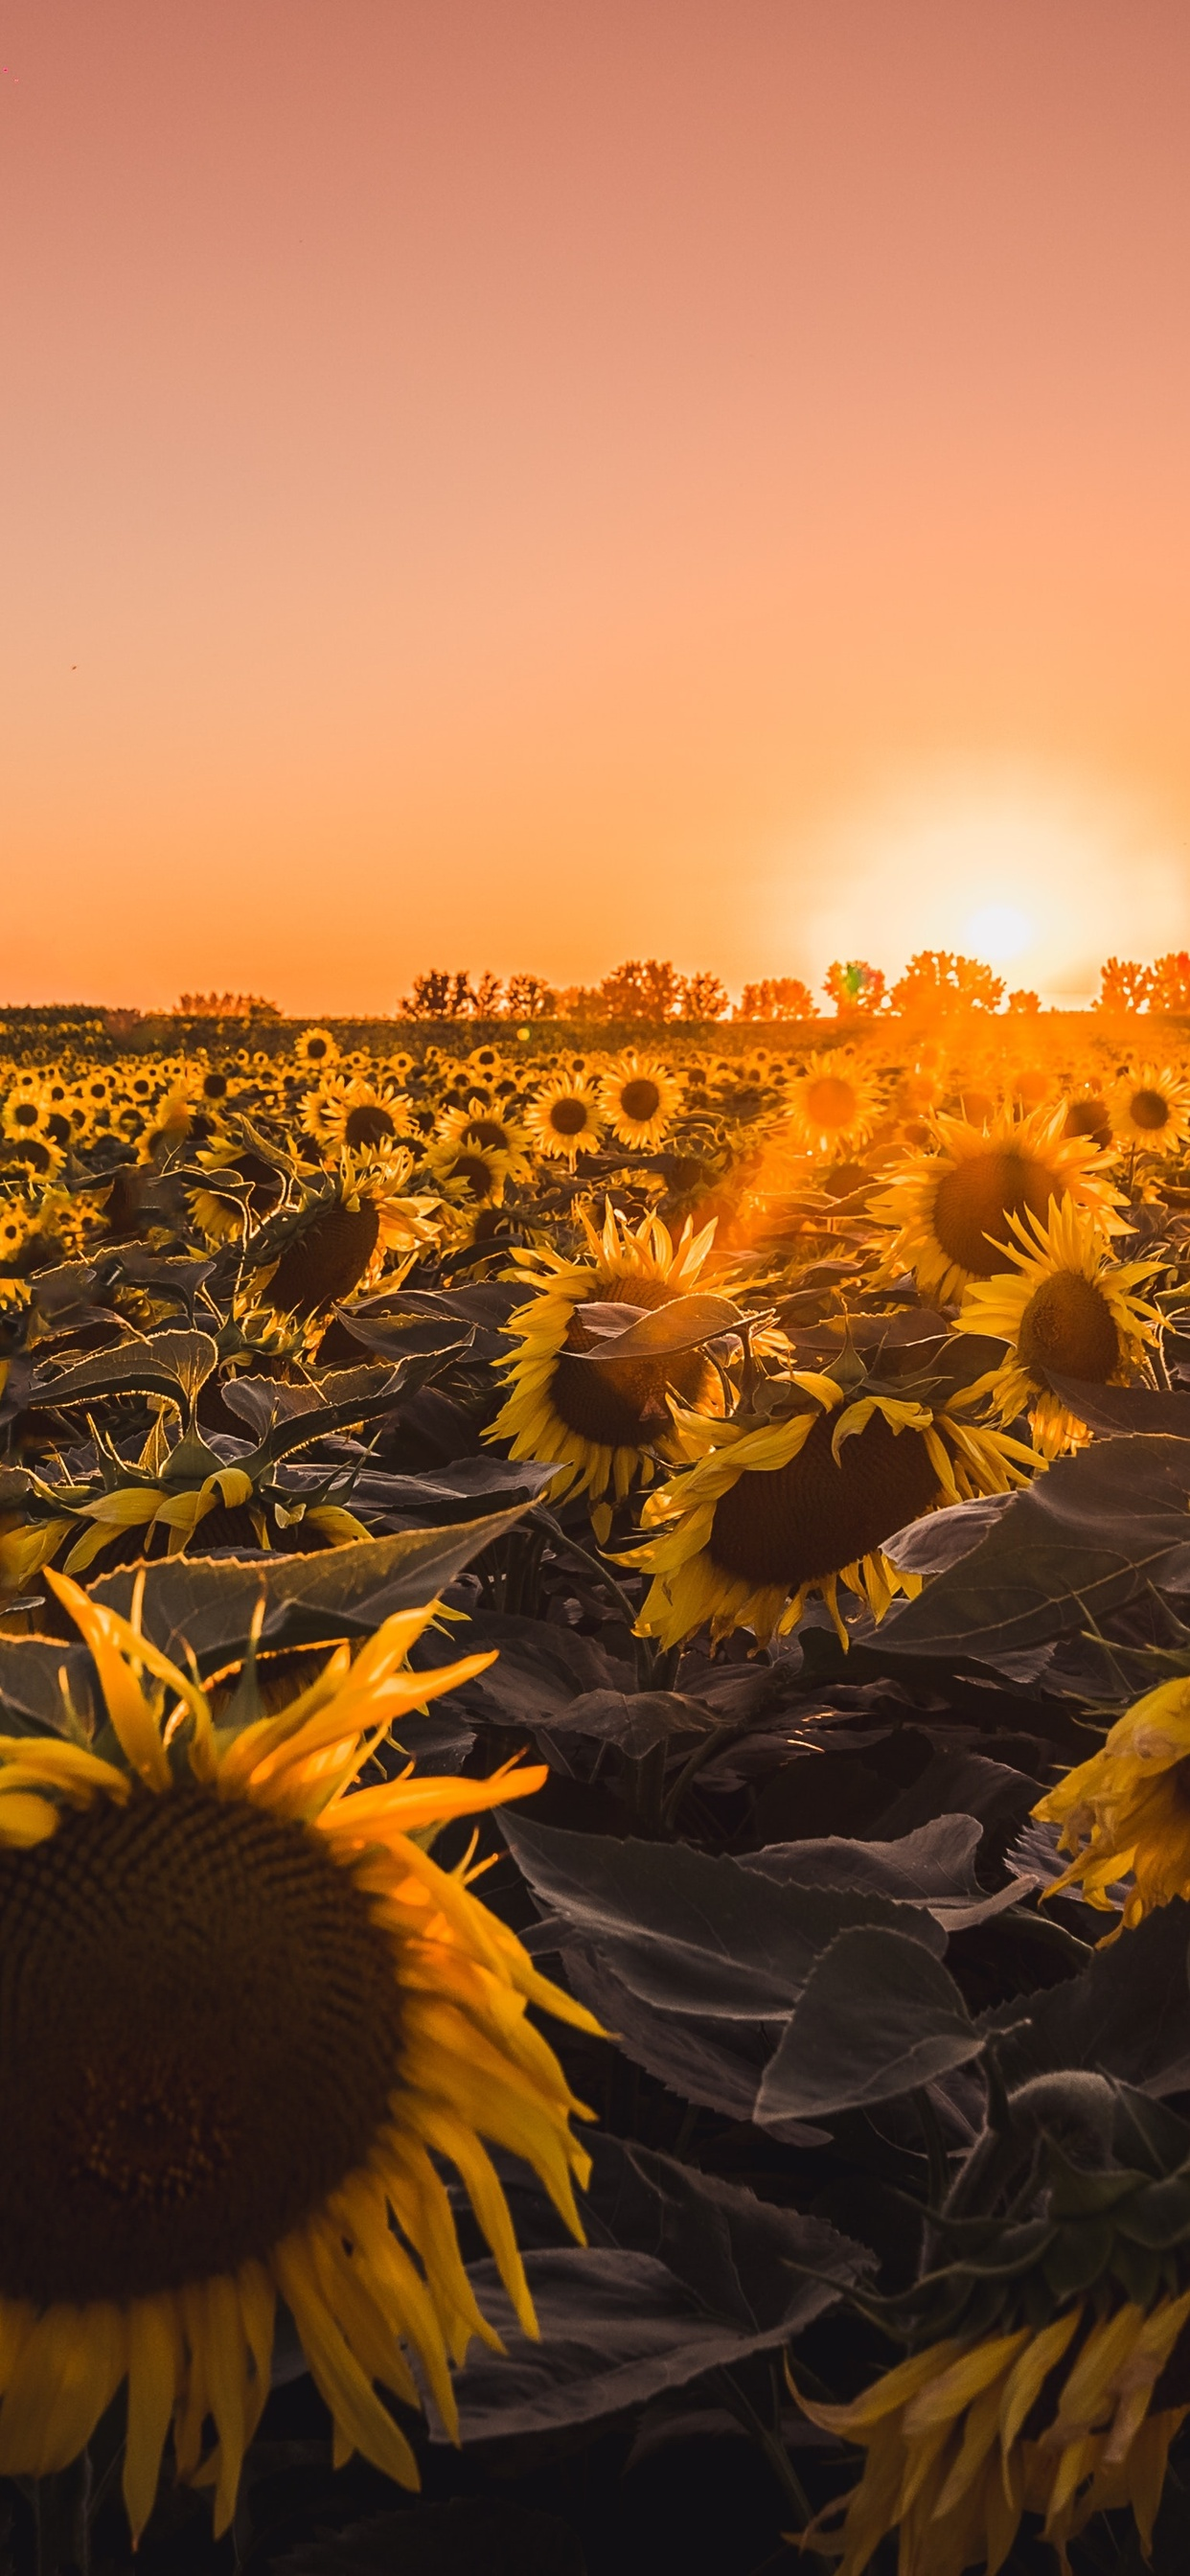 1242x2688 Sunflowers Farm Golden Hour 5k Iphone Xs Max Hd 4k